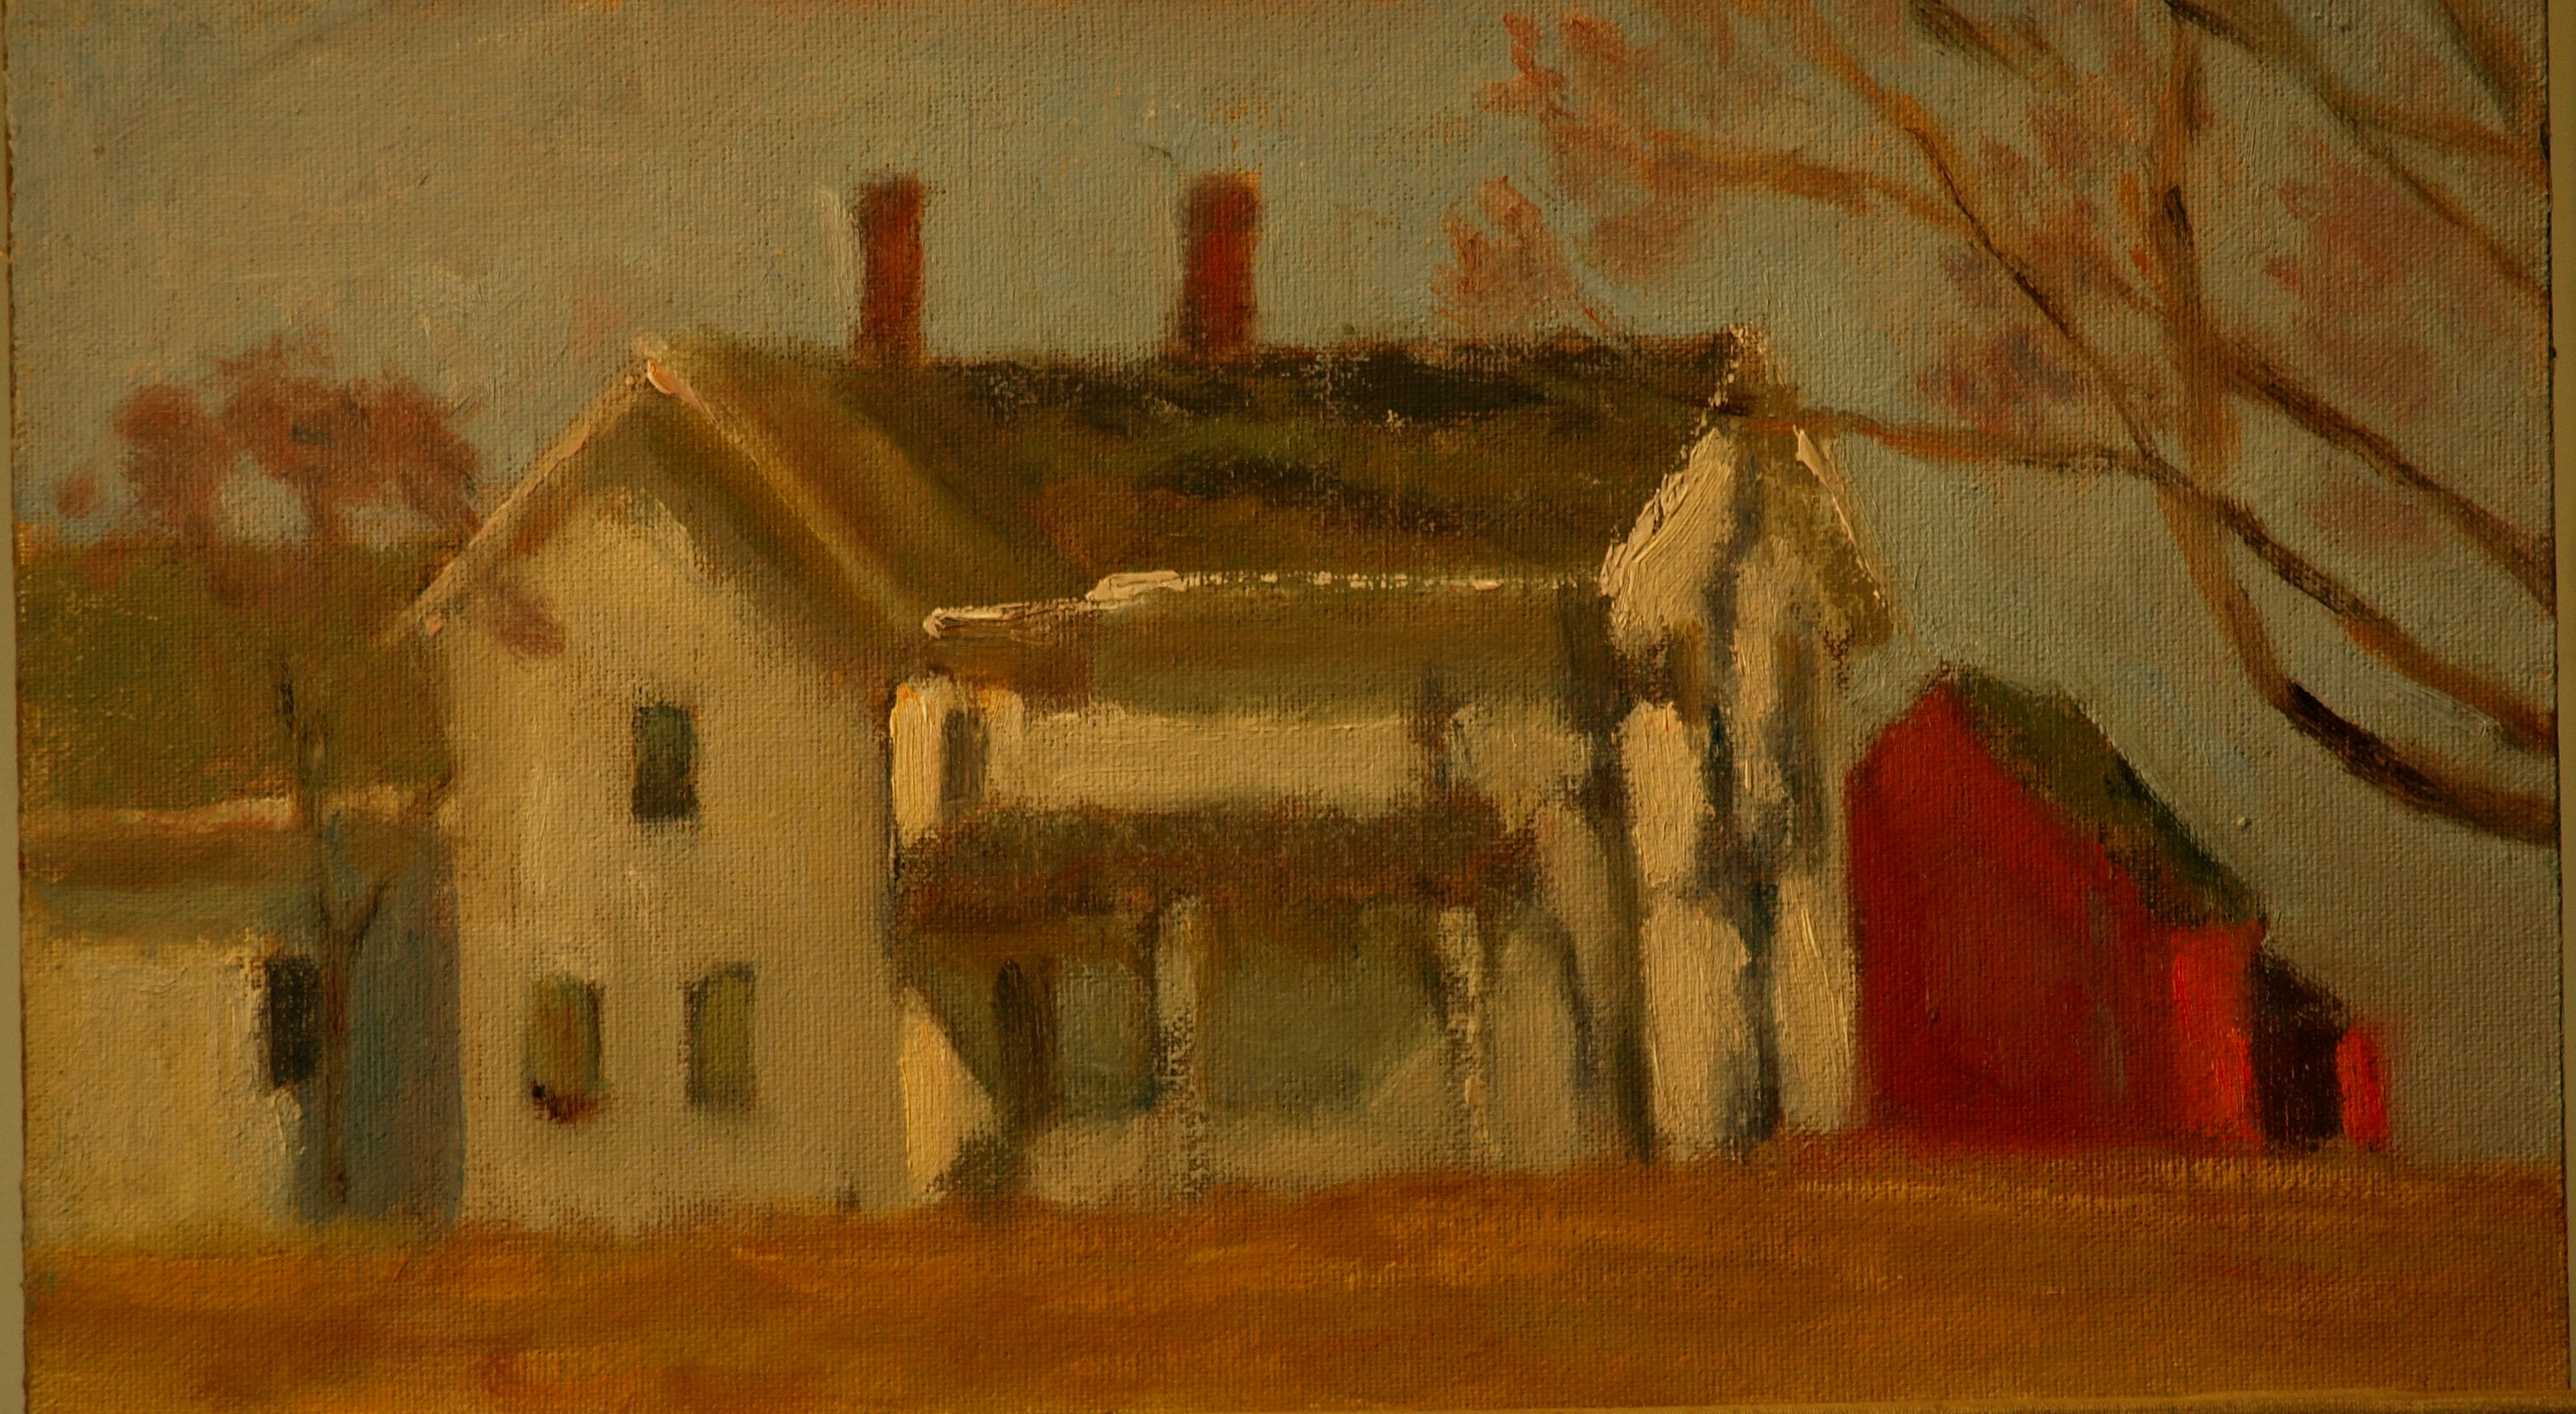 Farm Buildings at Marvelwood, Oil on Canvas on Panel, 8 x 14 Inches, by Richard Stalter, $225